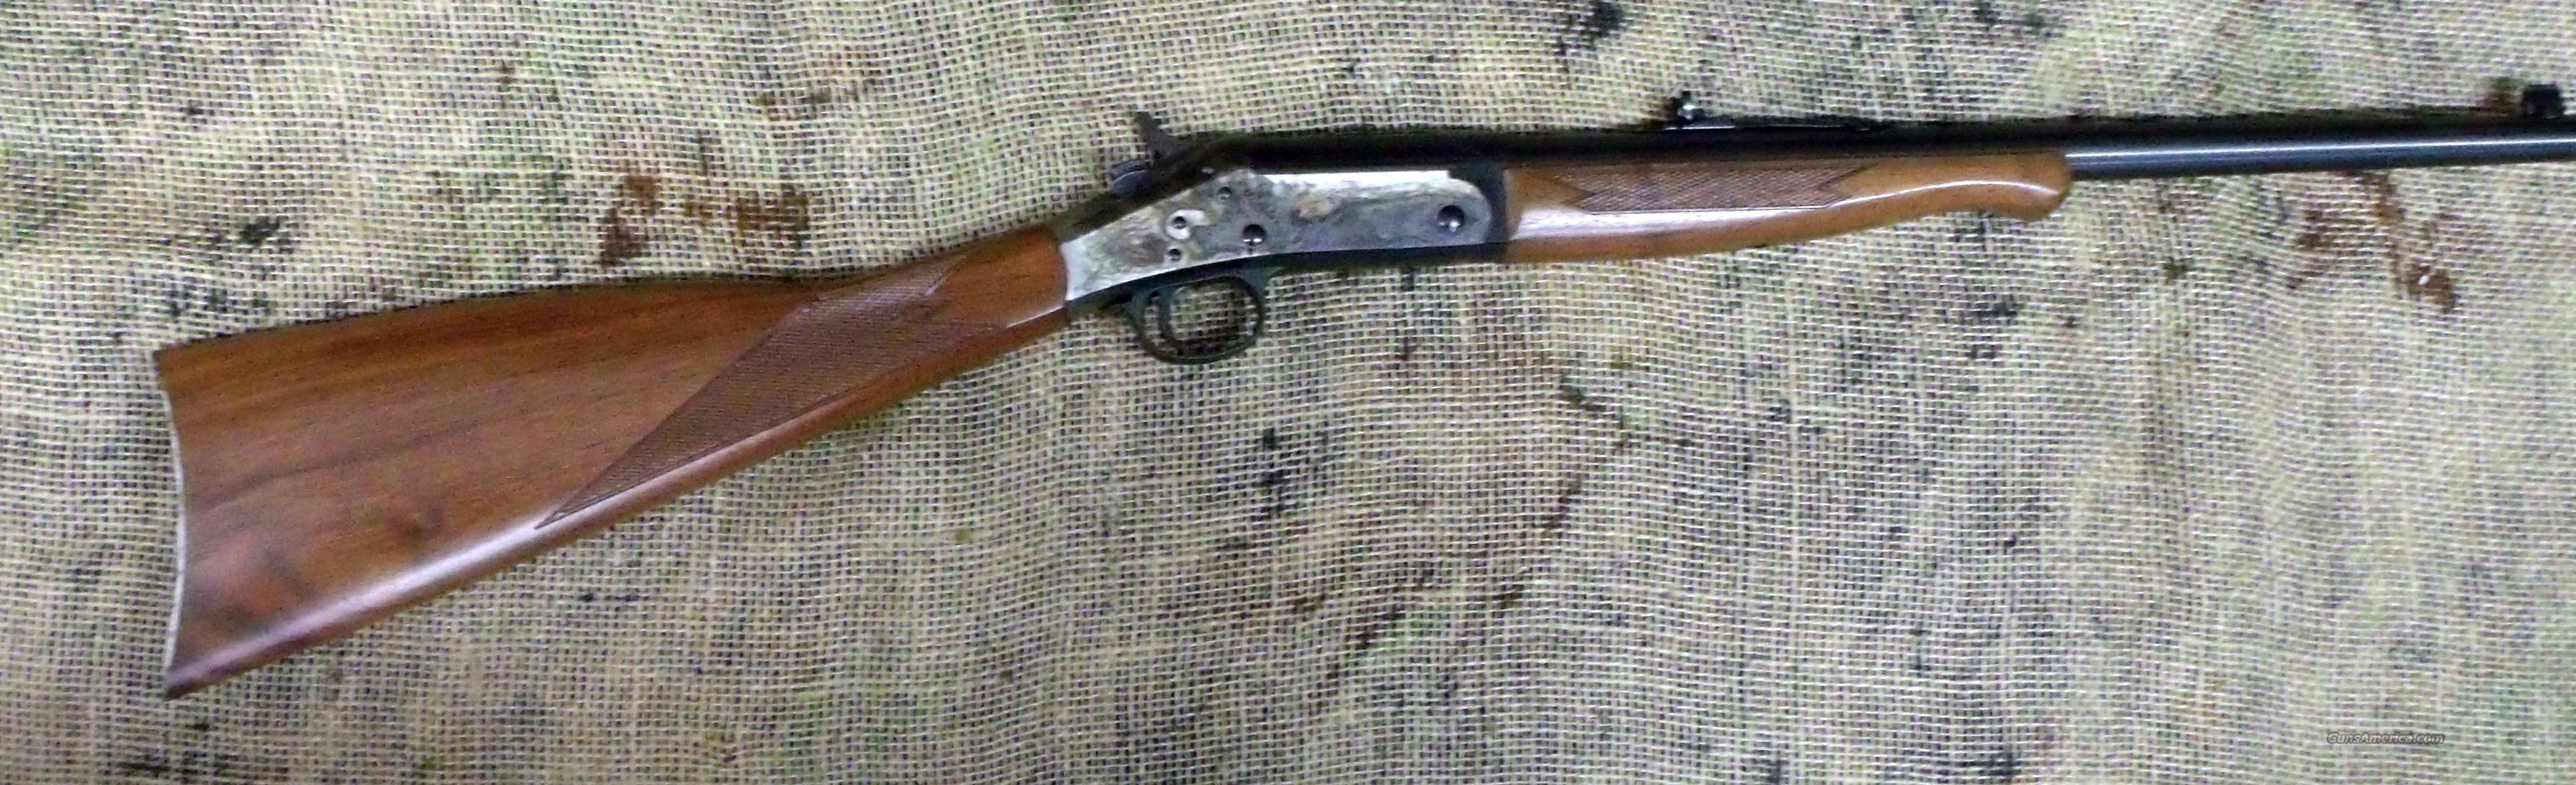 H & R Classic Carbine, 45 Colt Cal.  Guns > Rifles > Harrington & Richardson Rifles